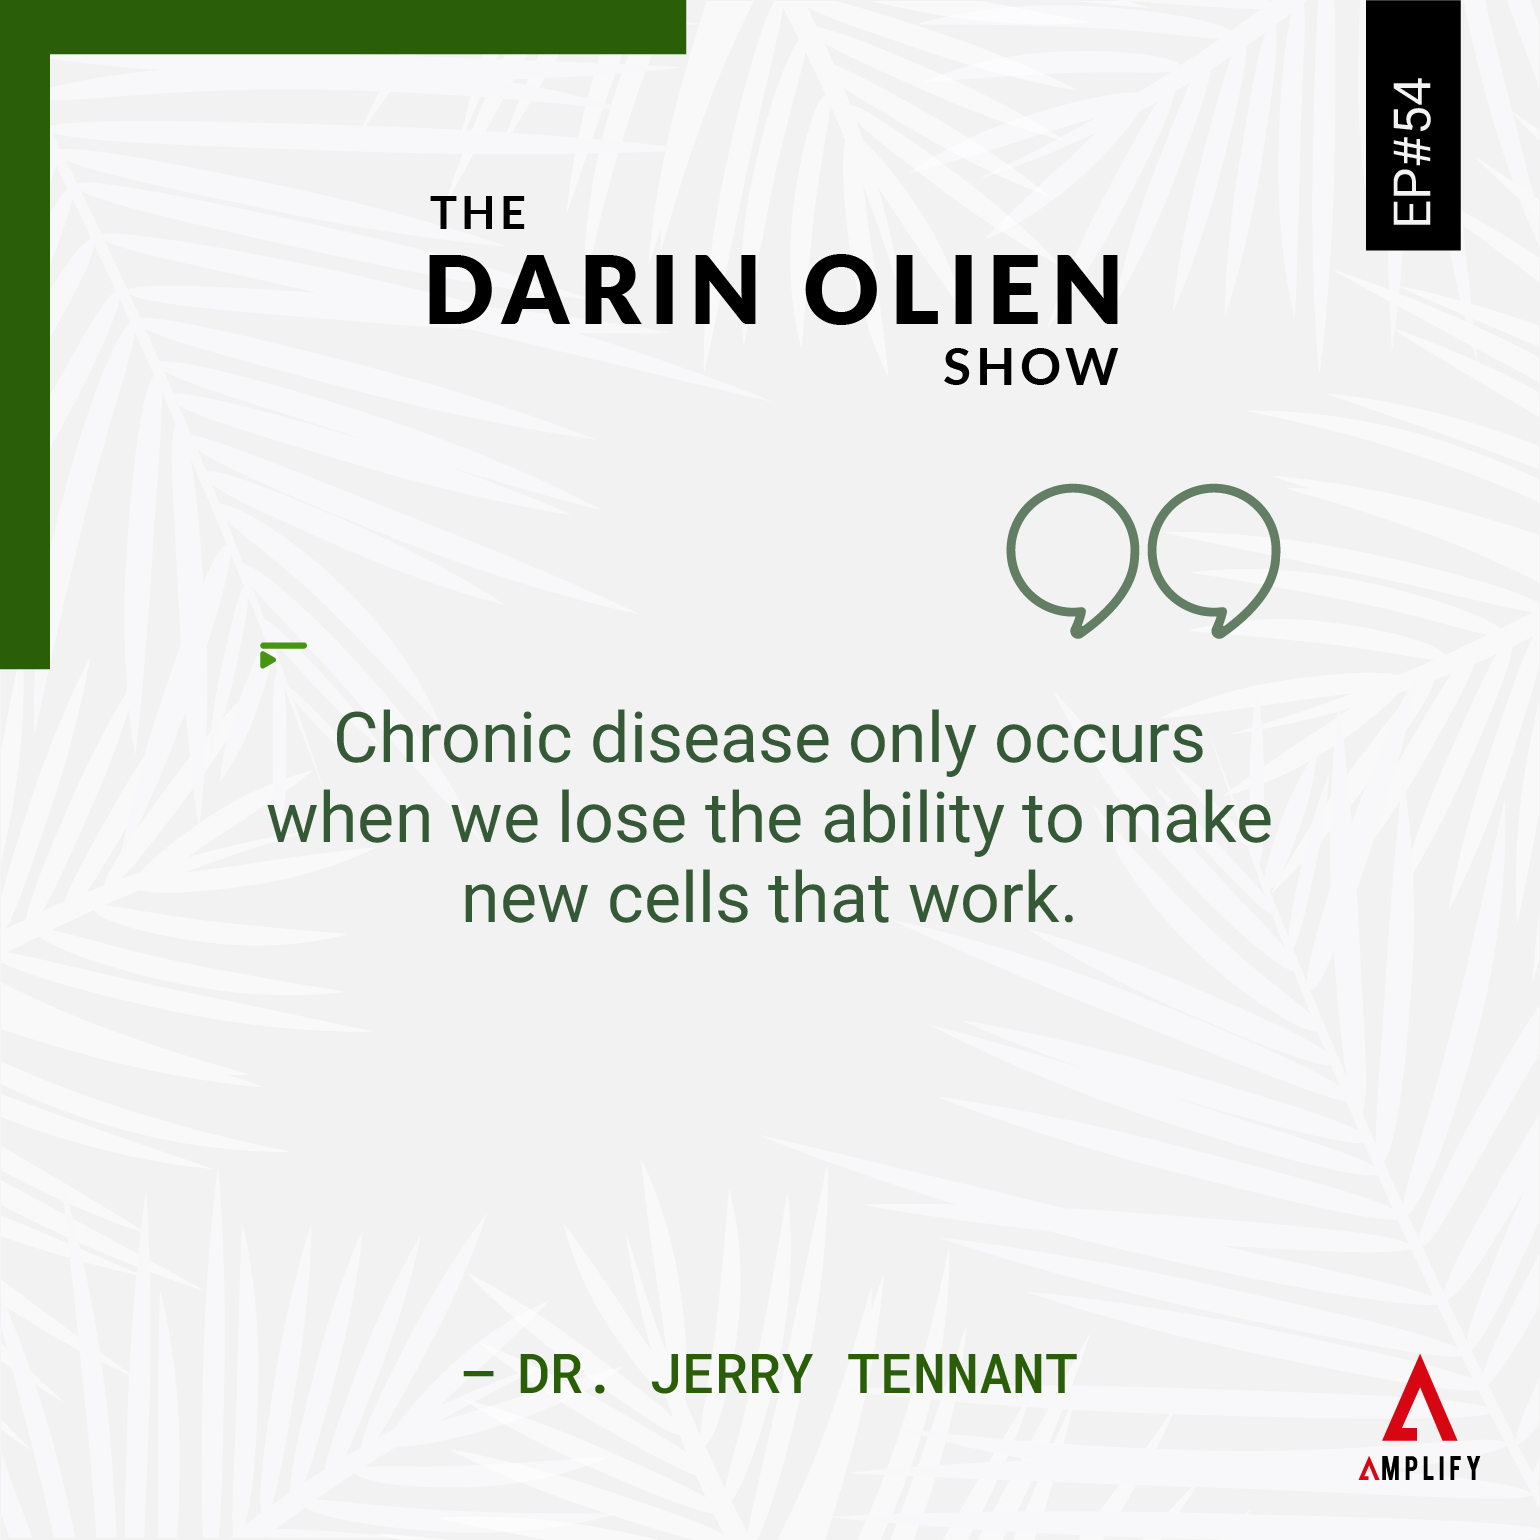 Quote: Chronic disease only occurs when we lose the ability to make new cells that work.